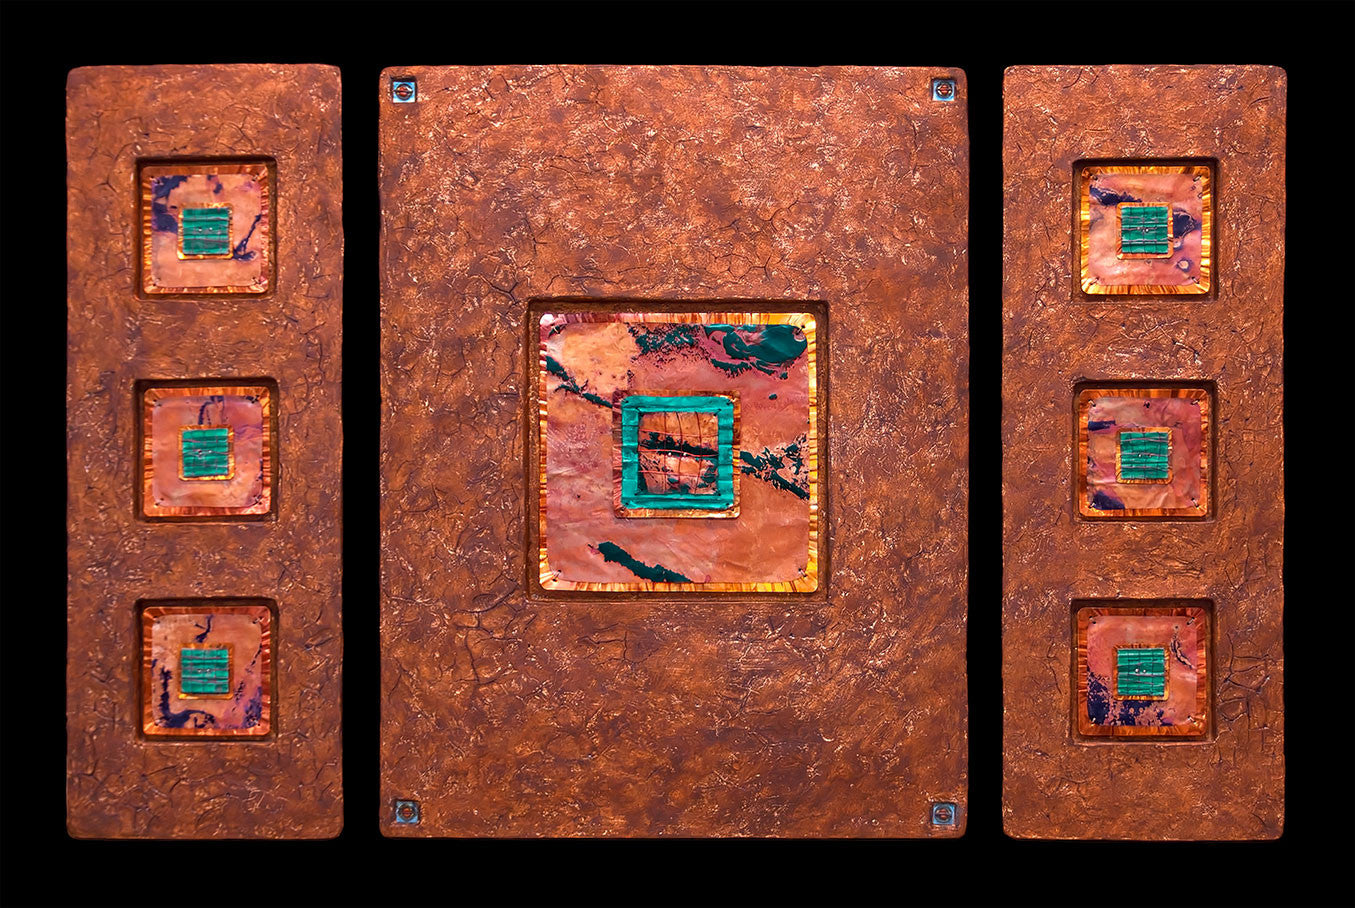 Jewels from Within / 40 x 24 x.75 / copper leaf with fired and patinaed copper on abaca fiber panels